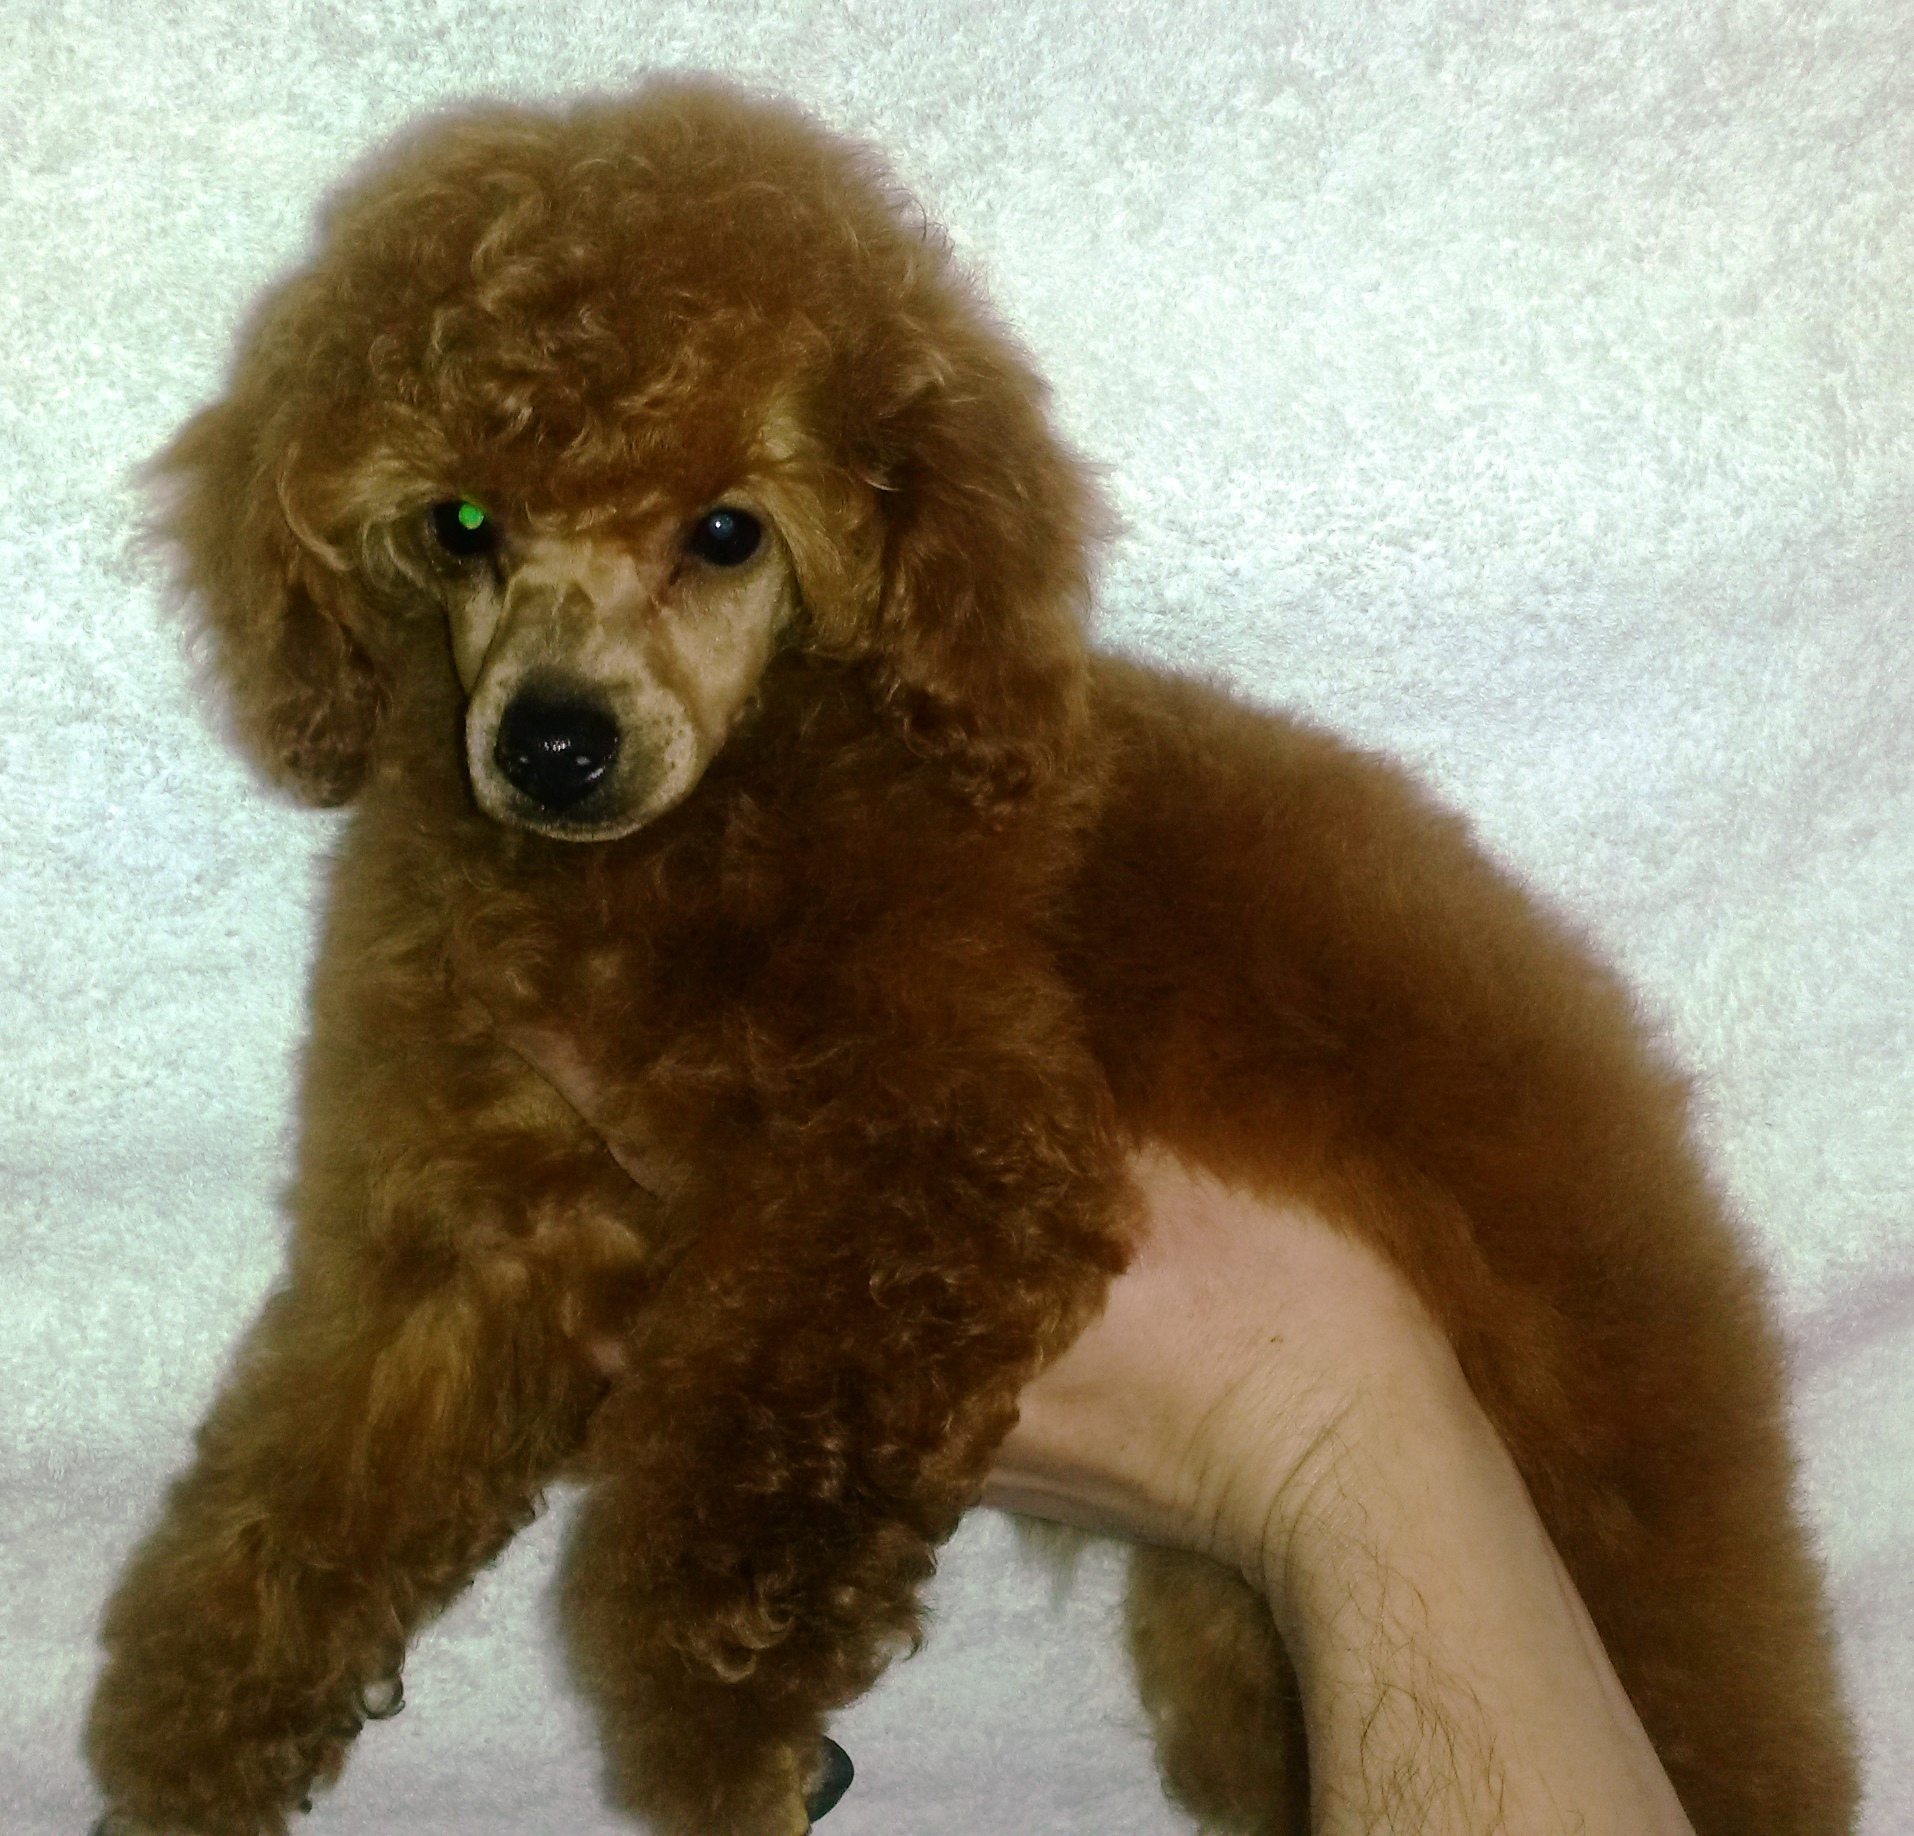 Andandre Breeders Of Red Toy Poodle Puppies In South Africa Poodles